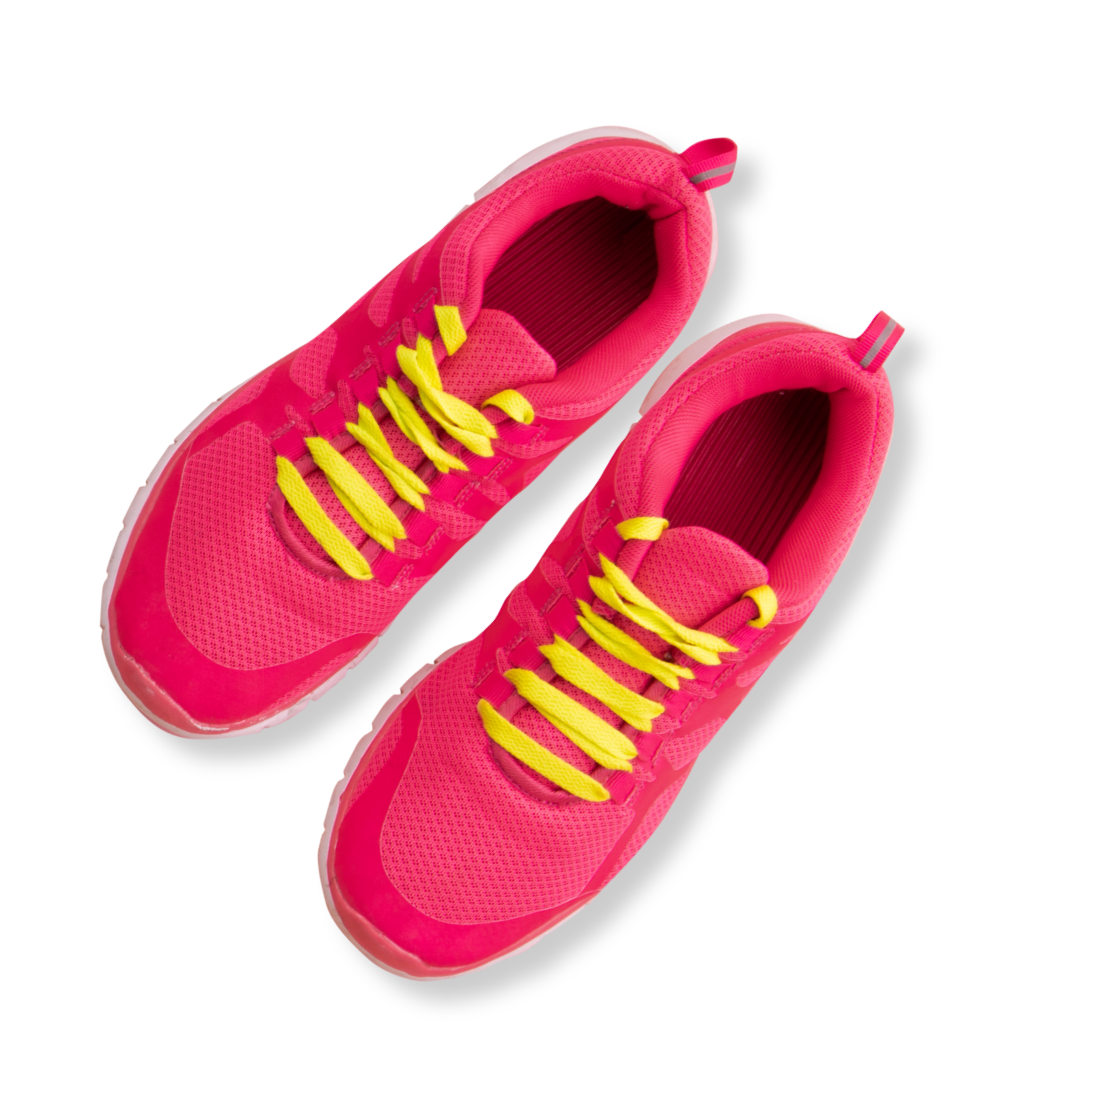 Image of a funky pair of trainers